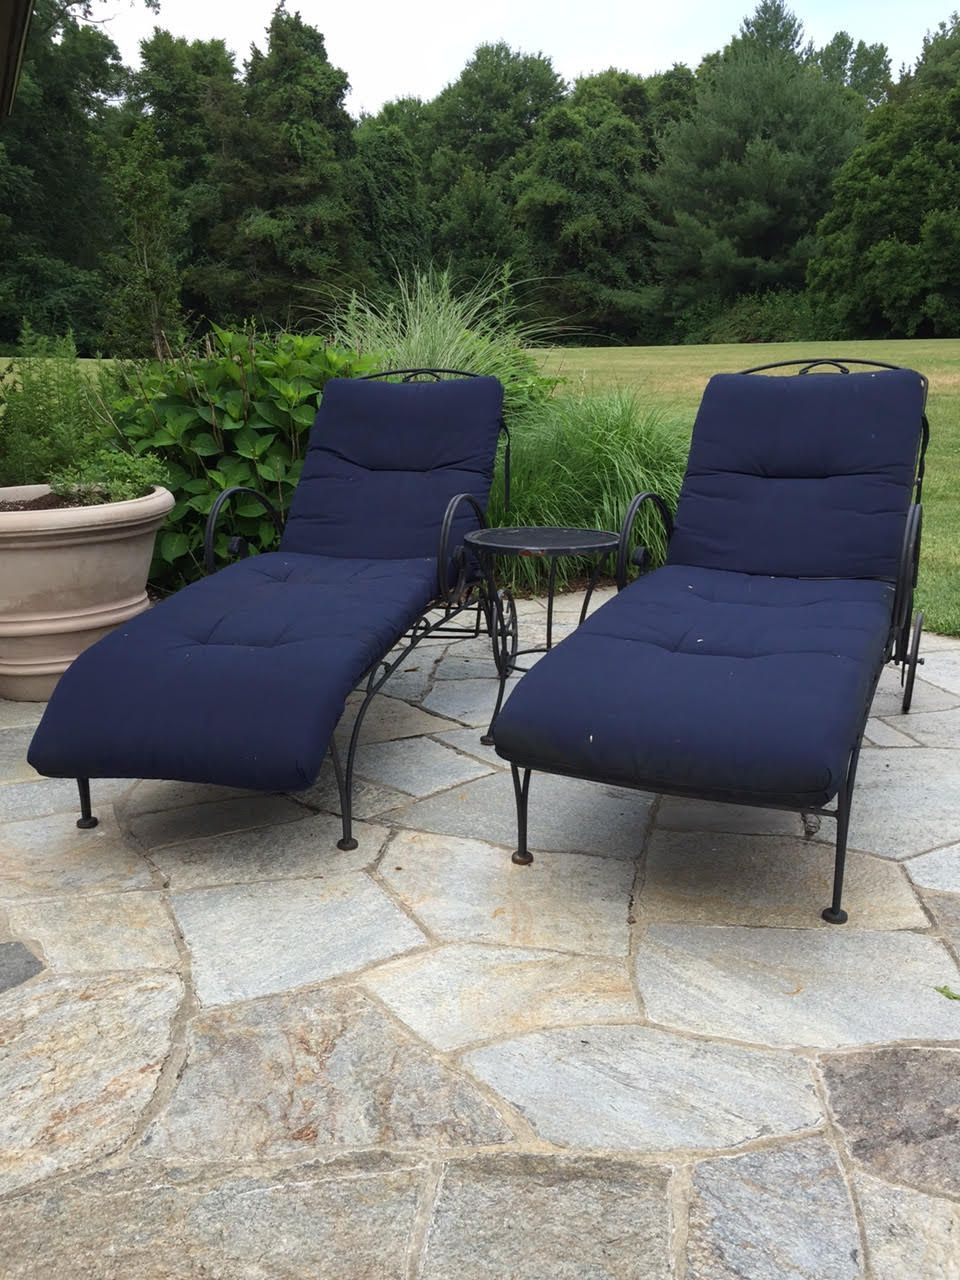 Watercress springs estate sales fairfield ct estate sale 600 wellington drive july 15th 16th 2016 pair of chaise lounge chairs and side table